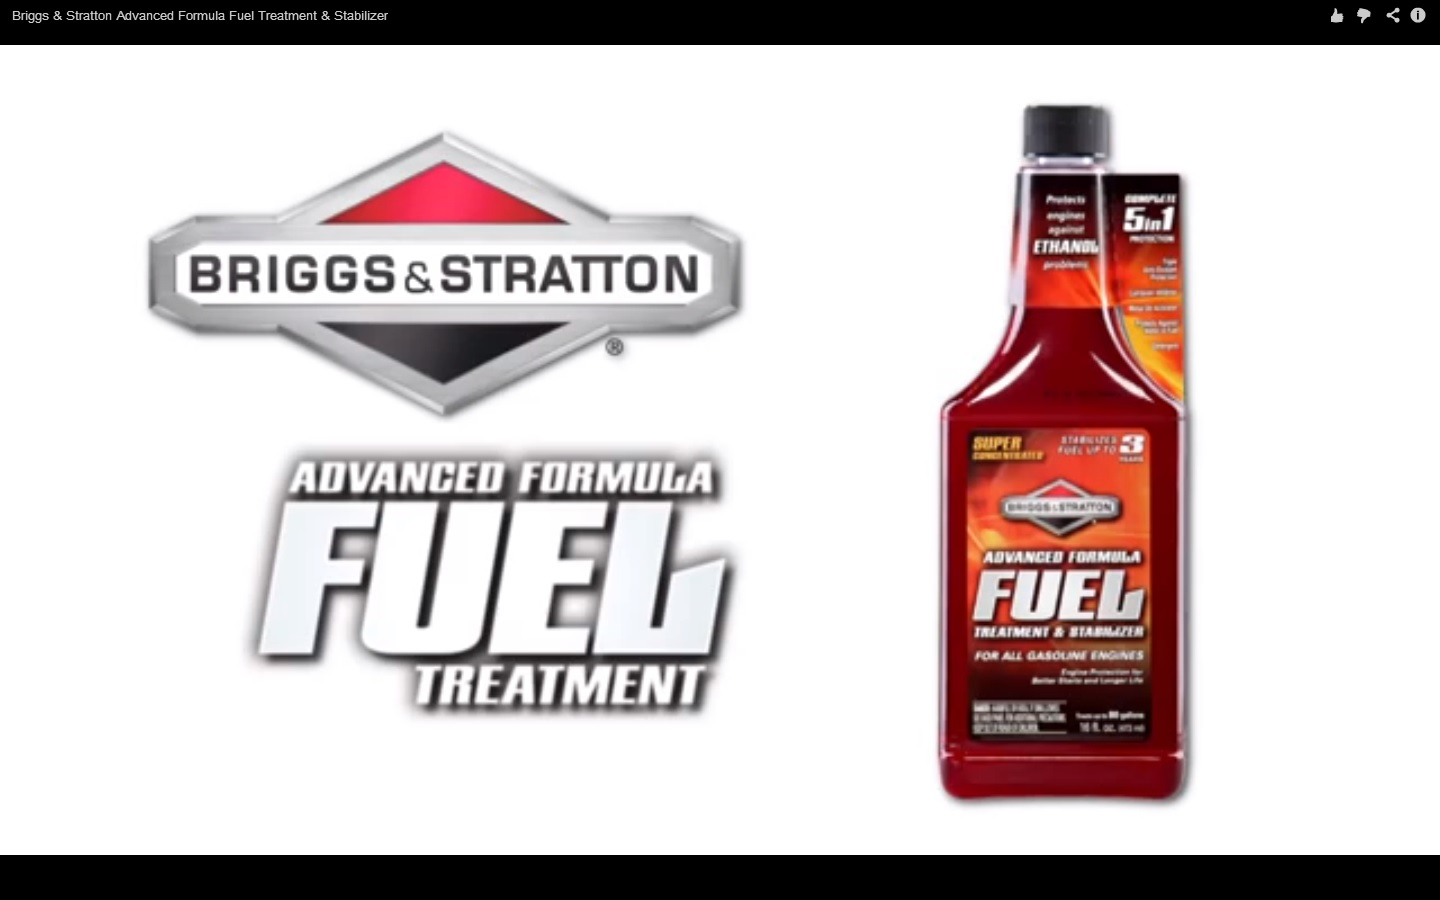 Briggs and Stratton Advanced Formula - click Link Below